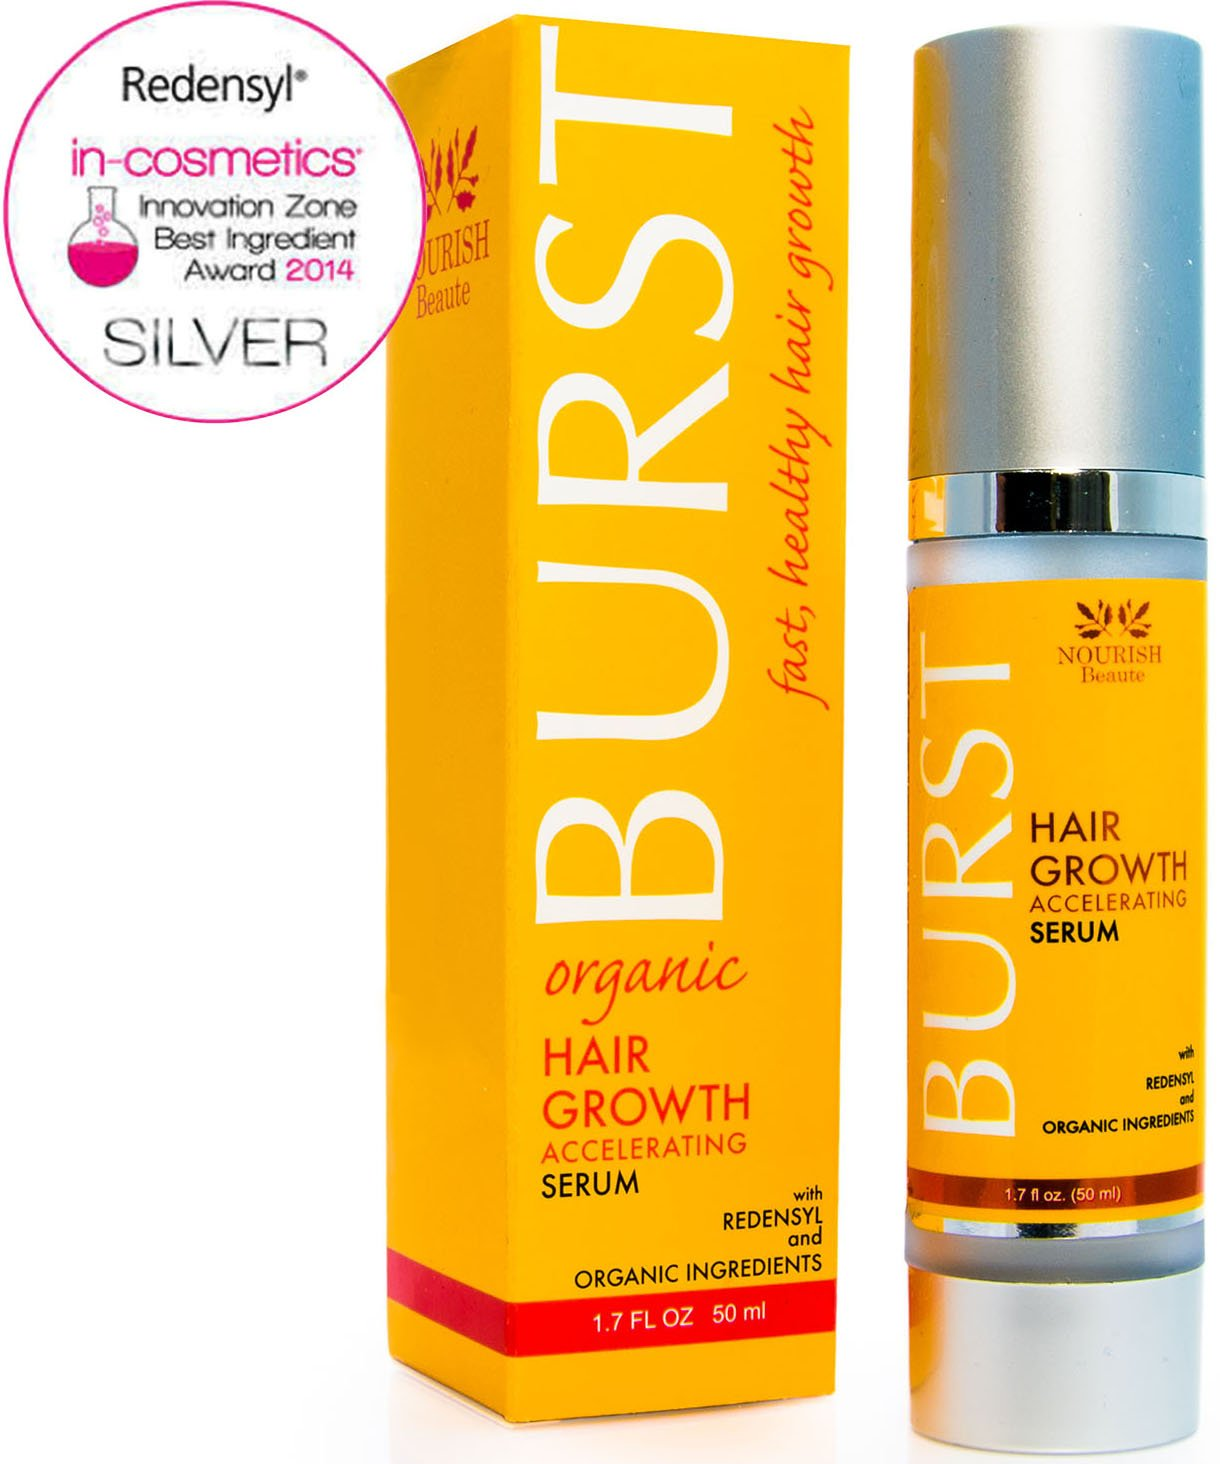 Nourish Beaute Hair Loss Treatment and Growth Serum - Stem-Cell Technology, DHT Blockers and Caffeine Stop Thinning Hair Fast - Proven Regrowth Product For Men and Women